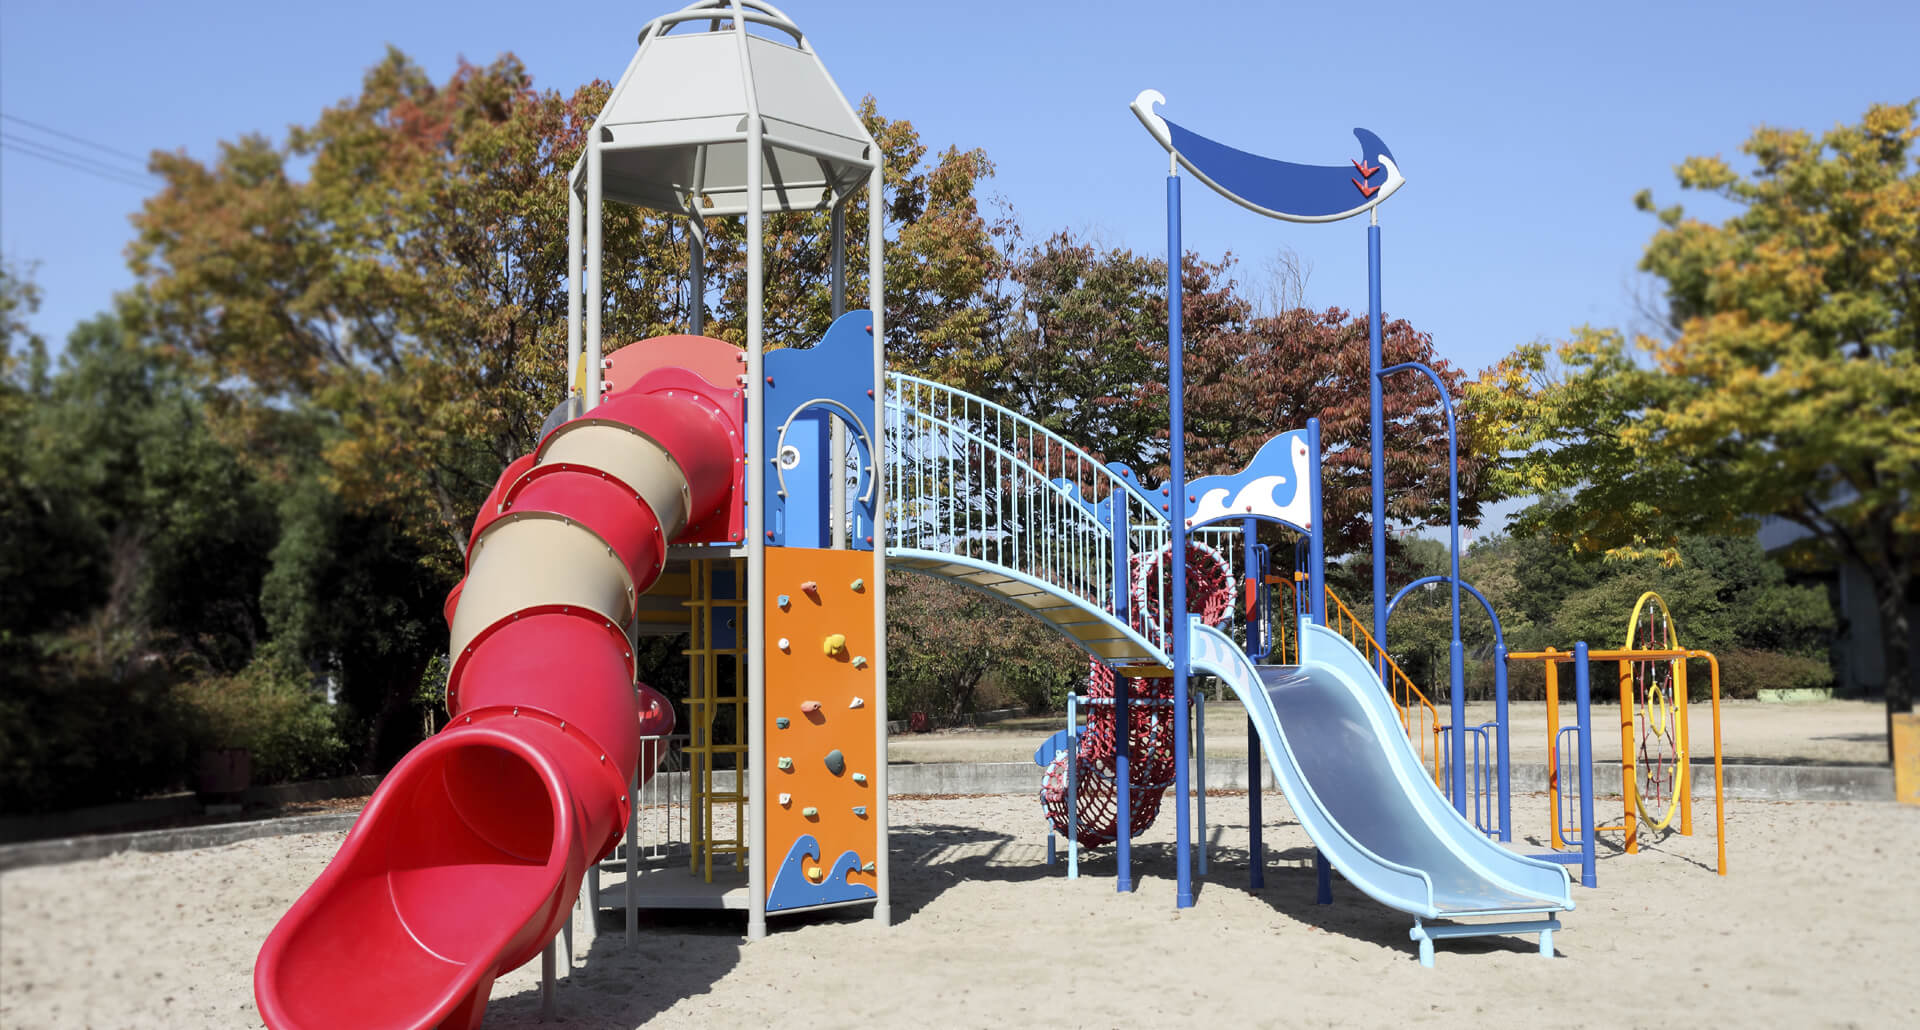 Full scale service in regards to planning, installation and maintenance of Play Equipment